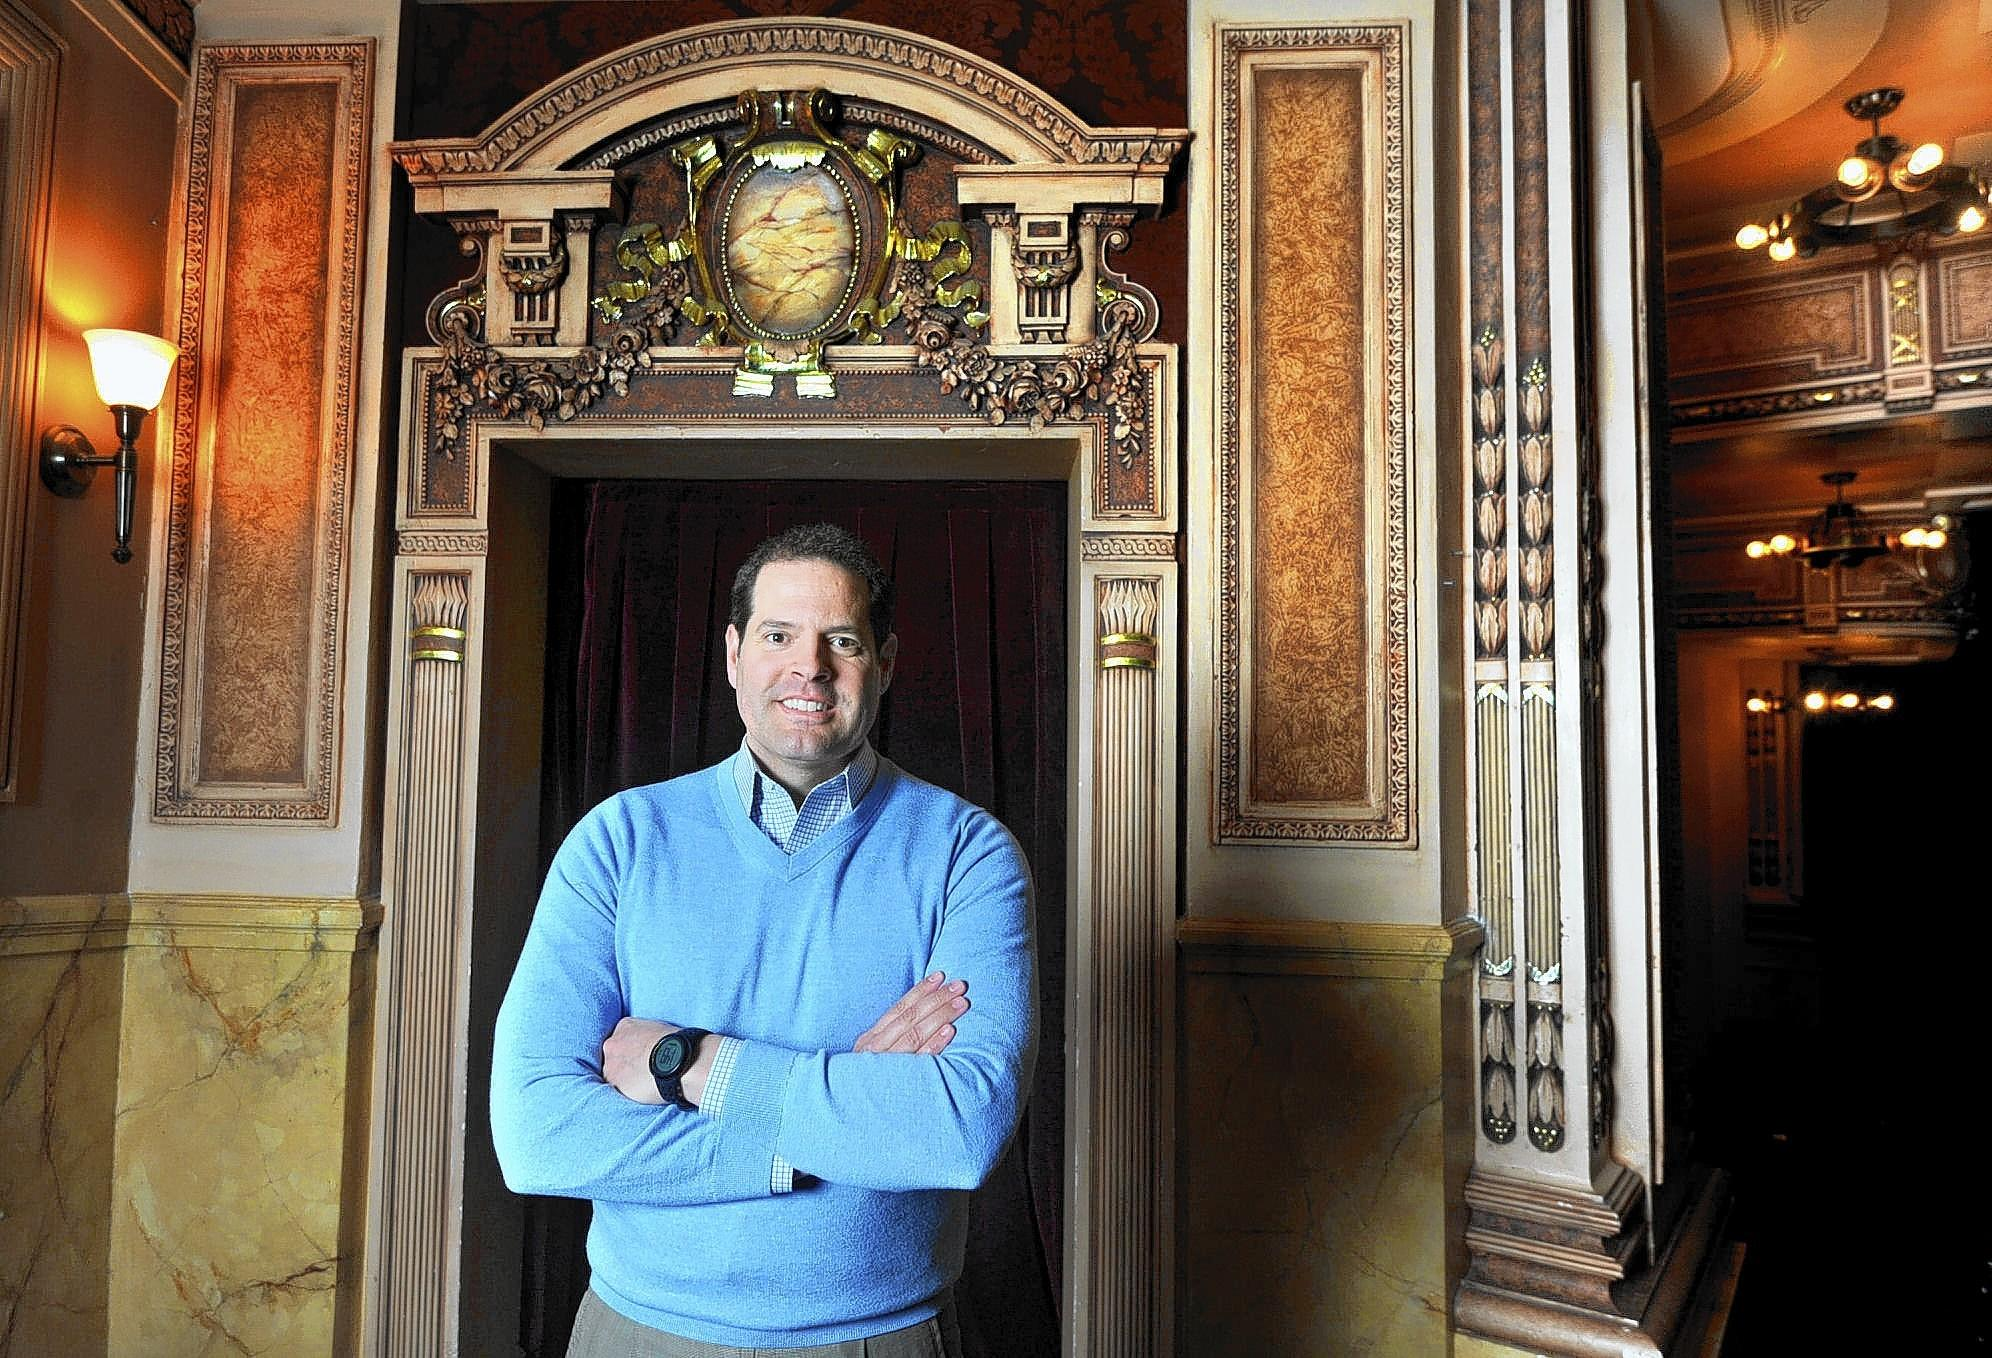 Jeff Daniel, outgoing president of the Hippodrome at the France-Merrick Performing Arts Center, is pictured at the Hippodrome.